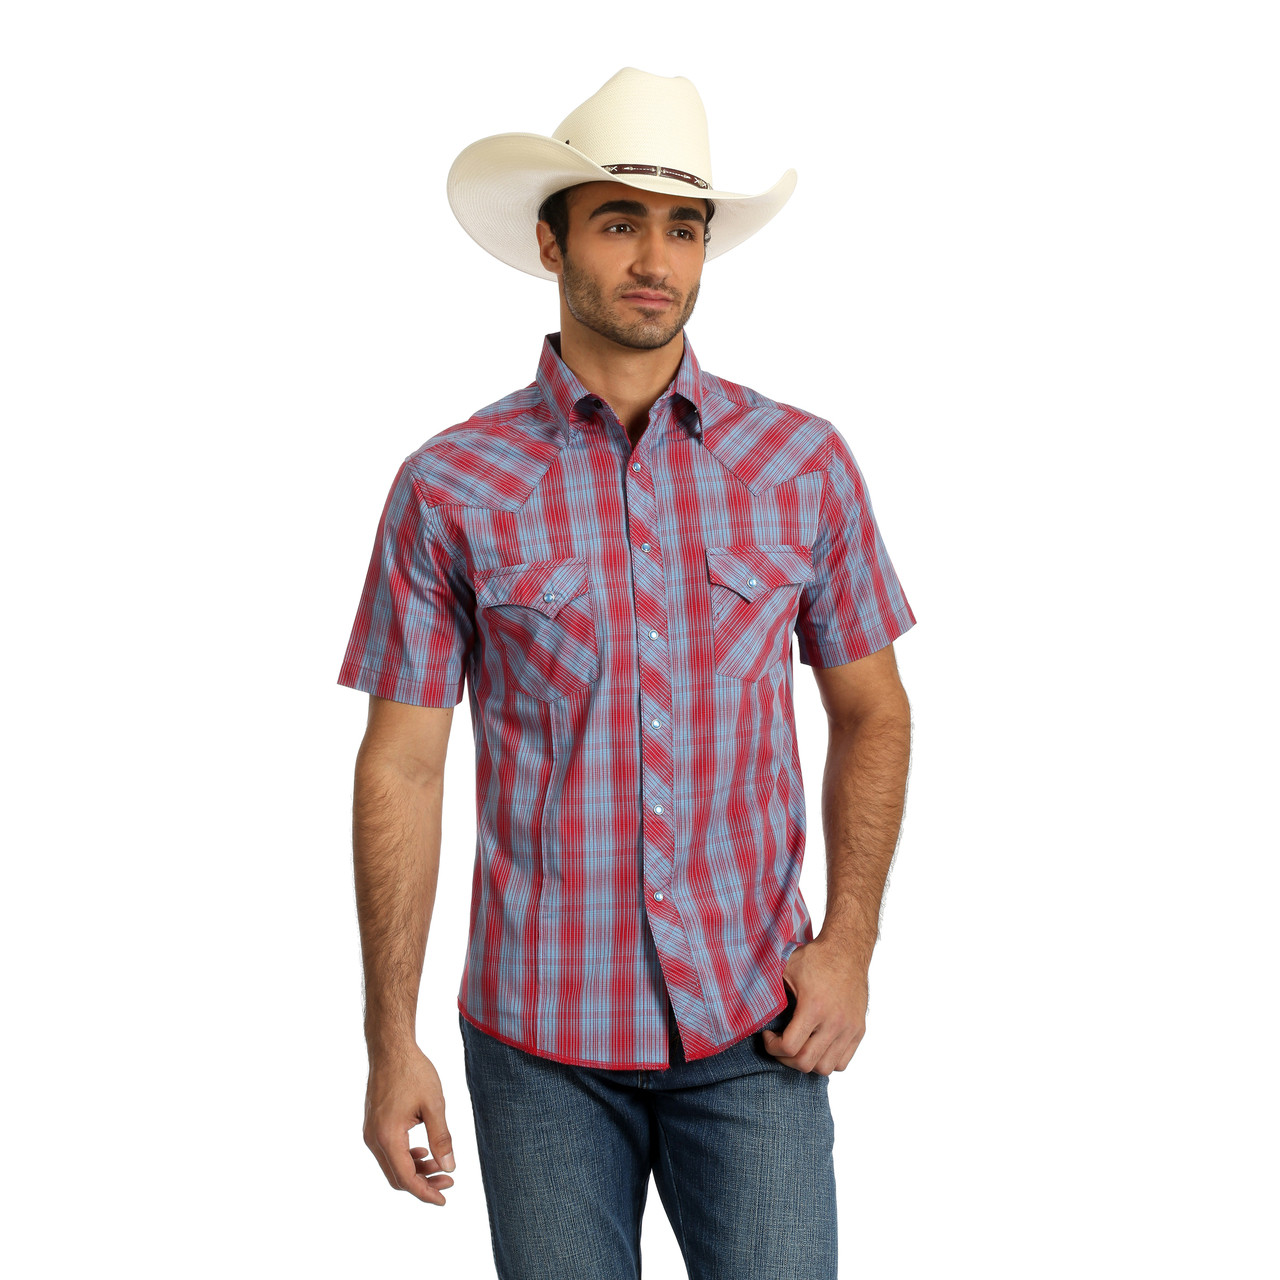 1c9ca1a5 Men's Wrangler Retro Blue and Red Plaid Short Sleeve Shirt - Herbert's  Boots and Western Wear